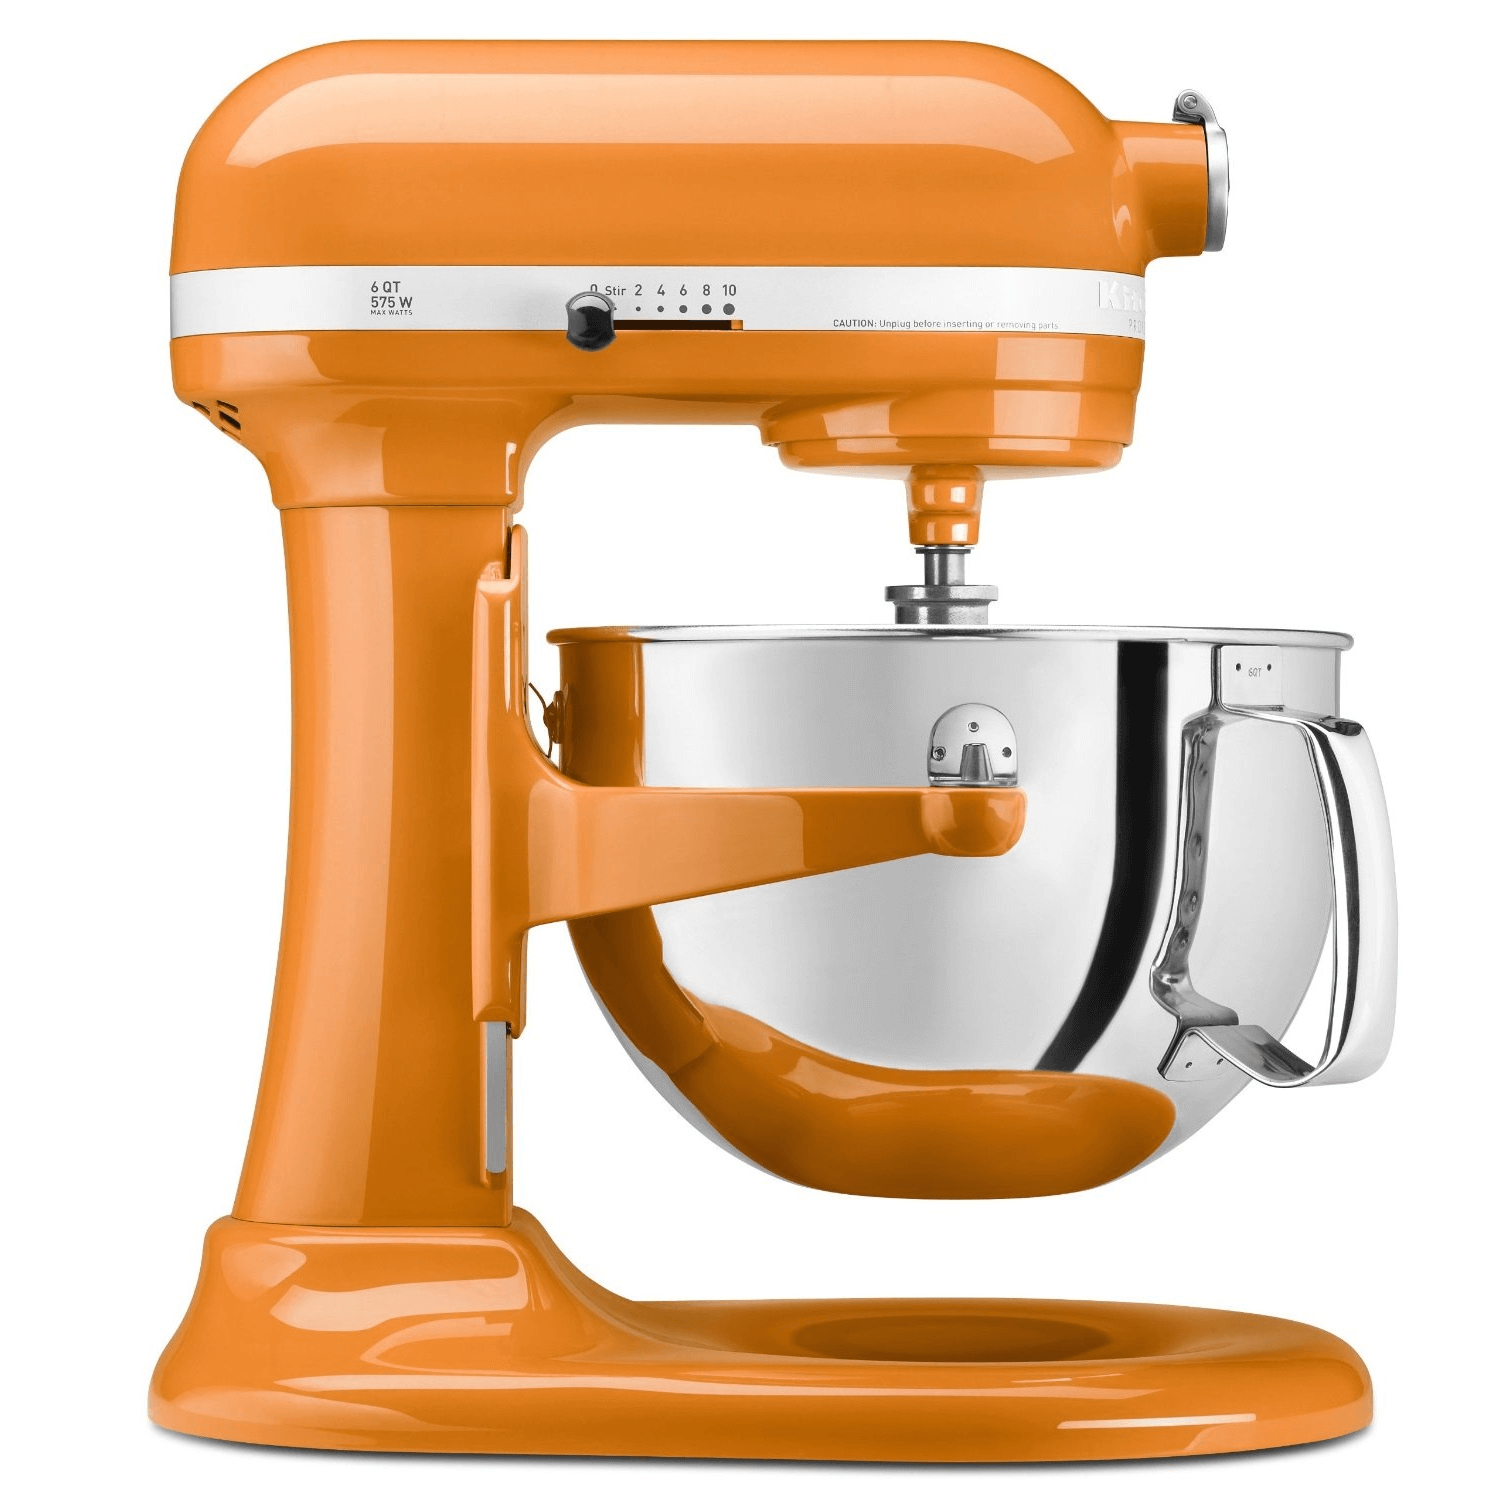 Kitchenaid mixer 600